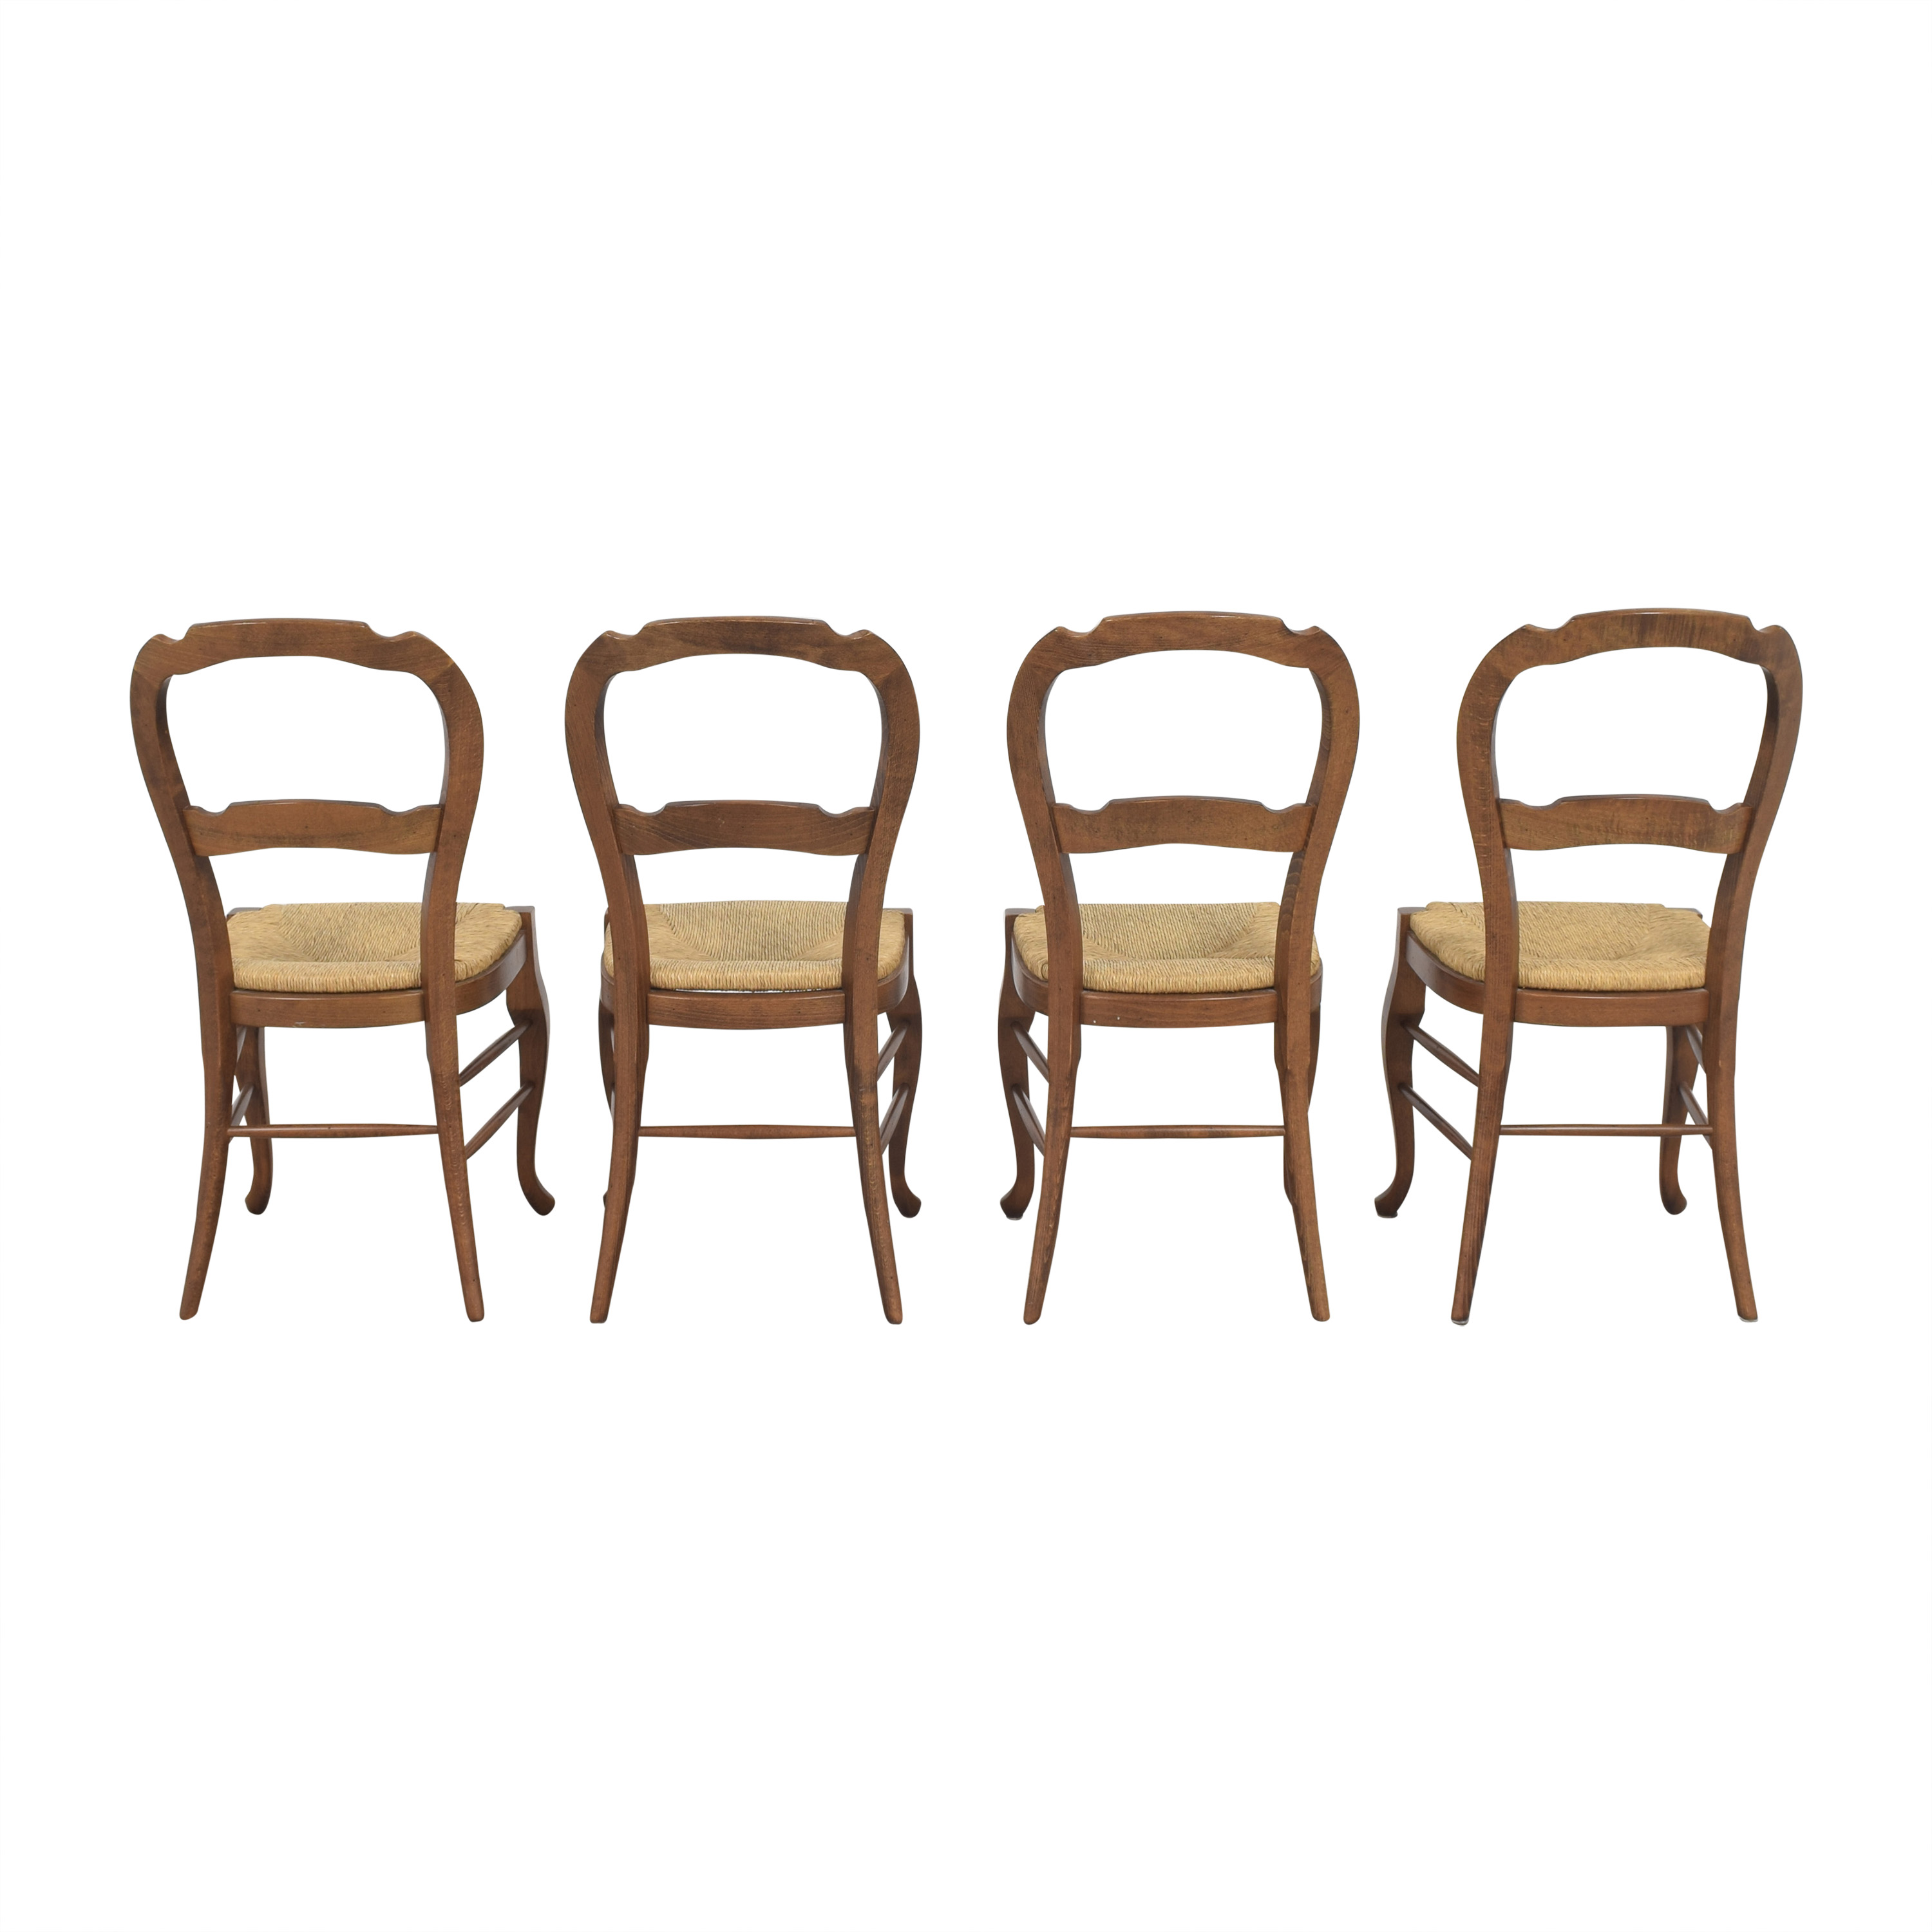 Pottery Barn Pottery Barn Woven Seat Dining Chairs ct